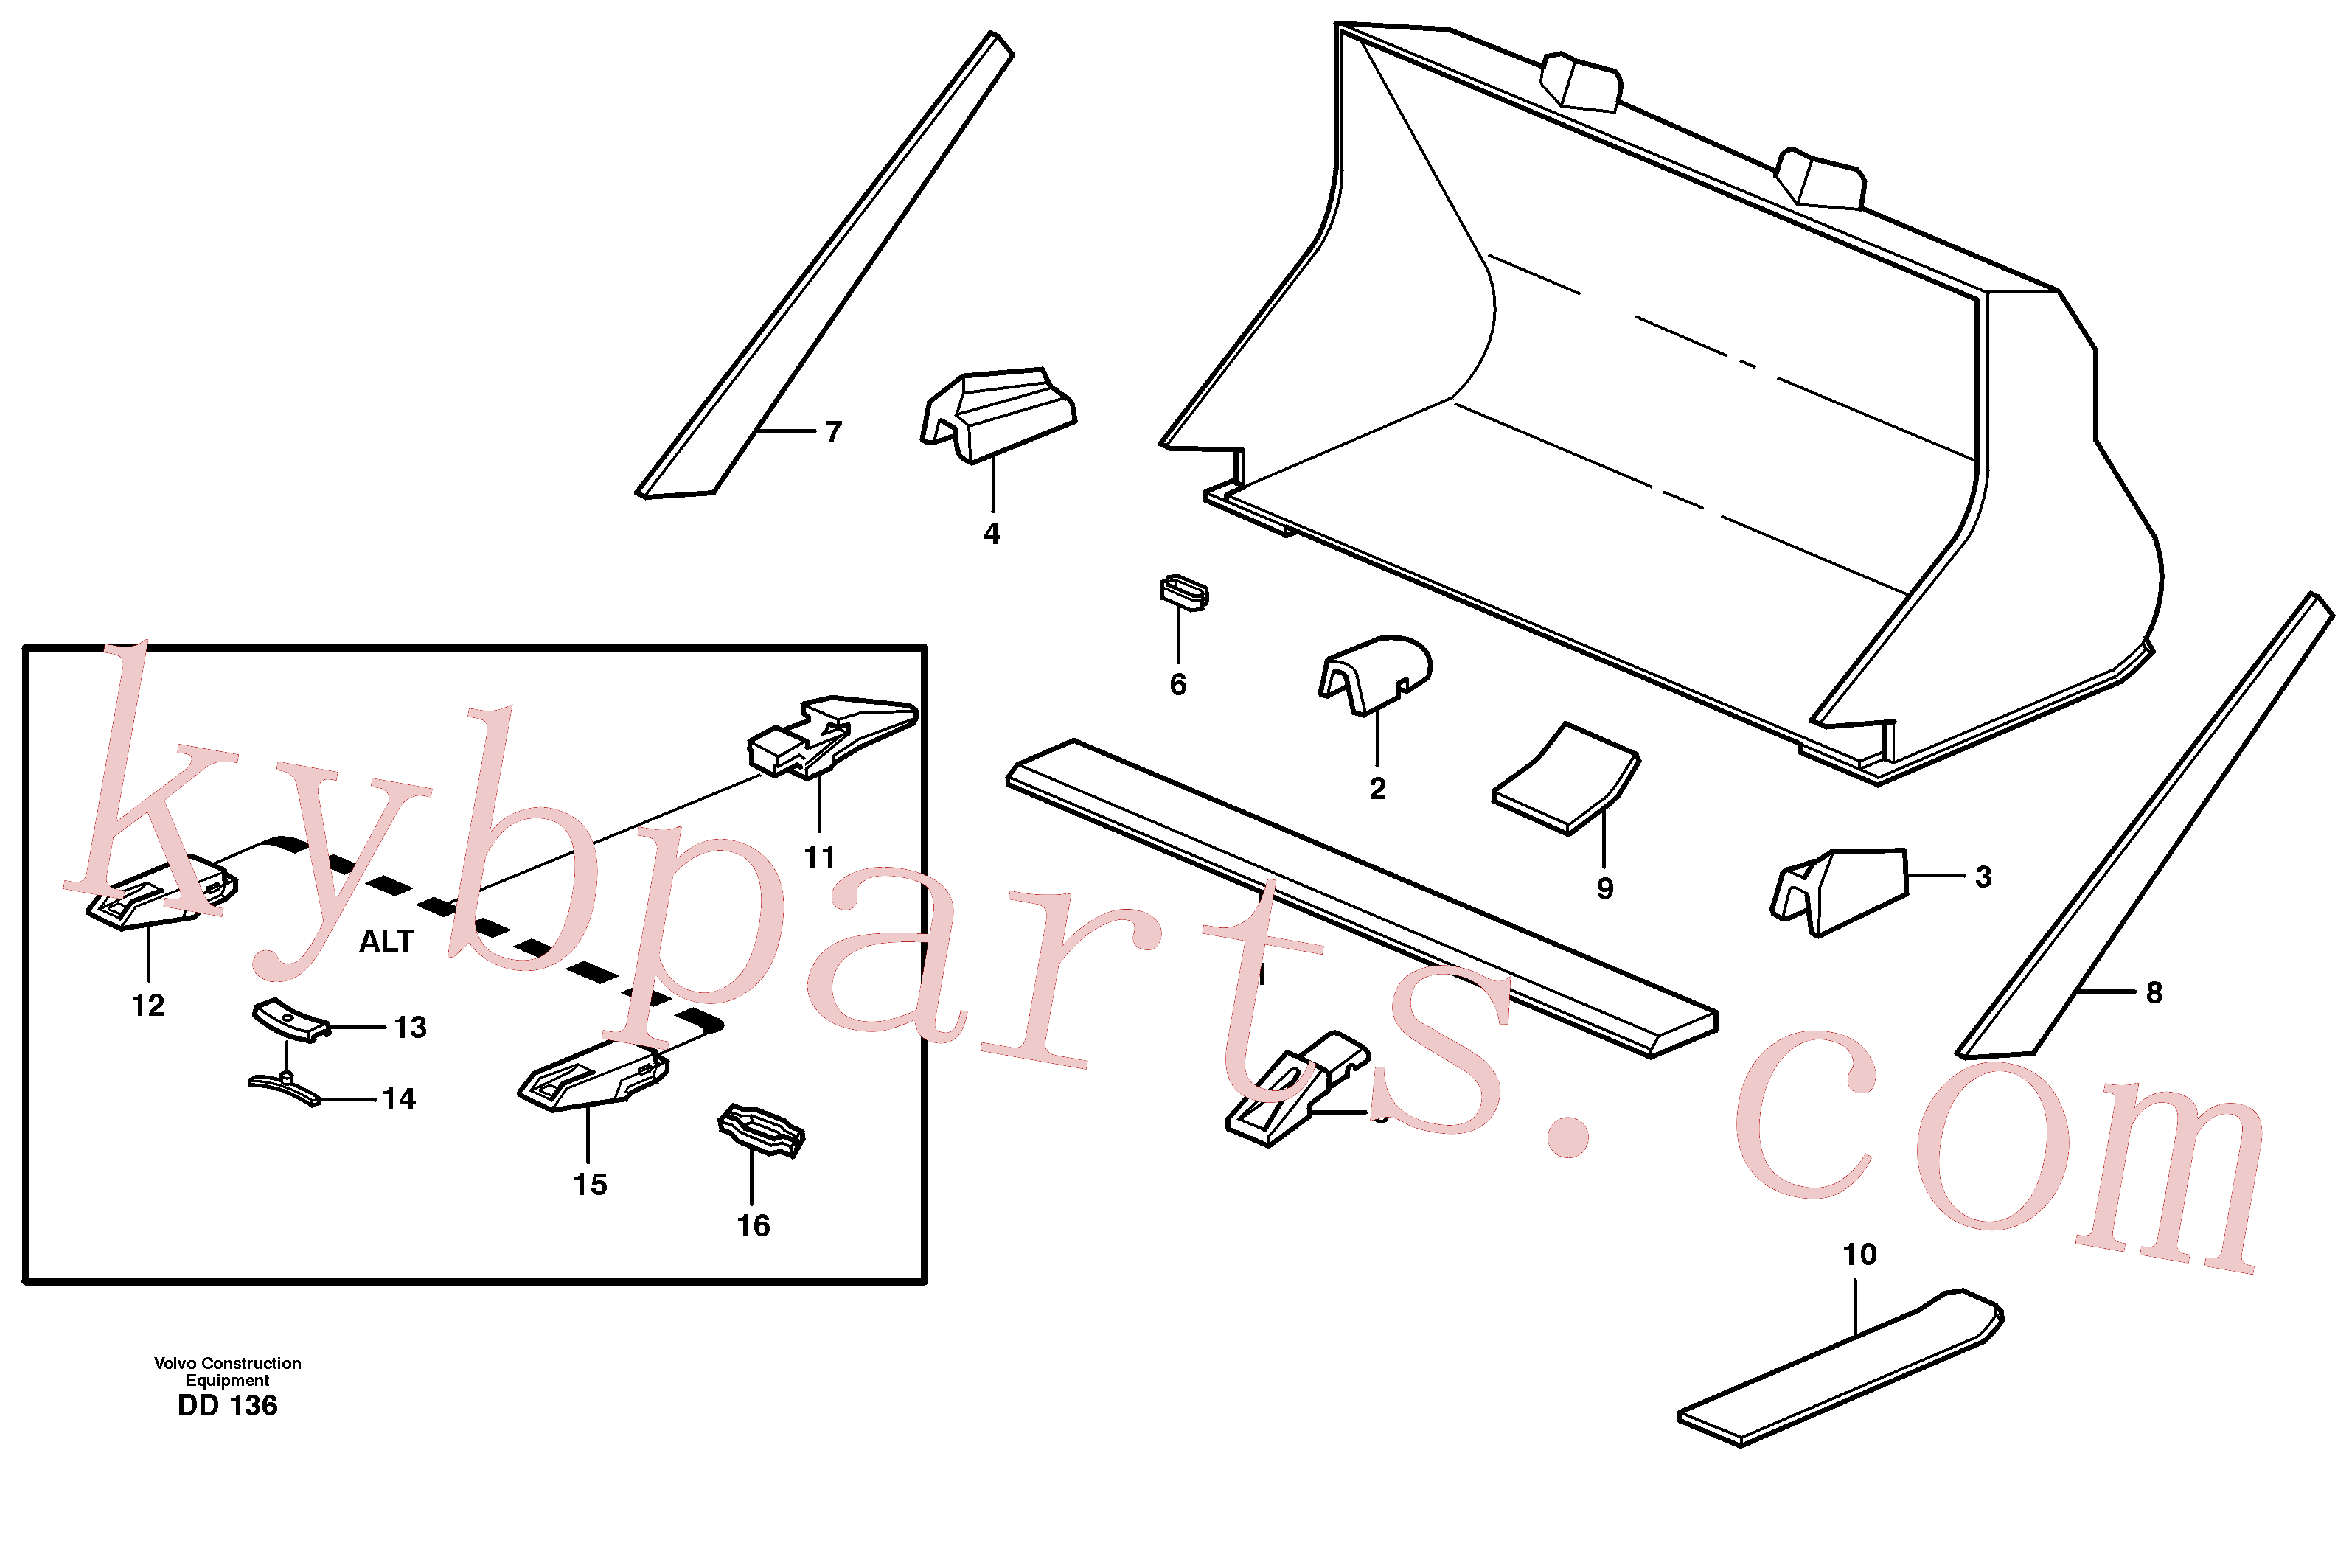 VOE4780569 for Volvo Bucket, straight with teeth(DD136 assembly)